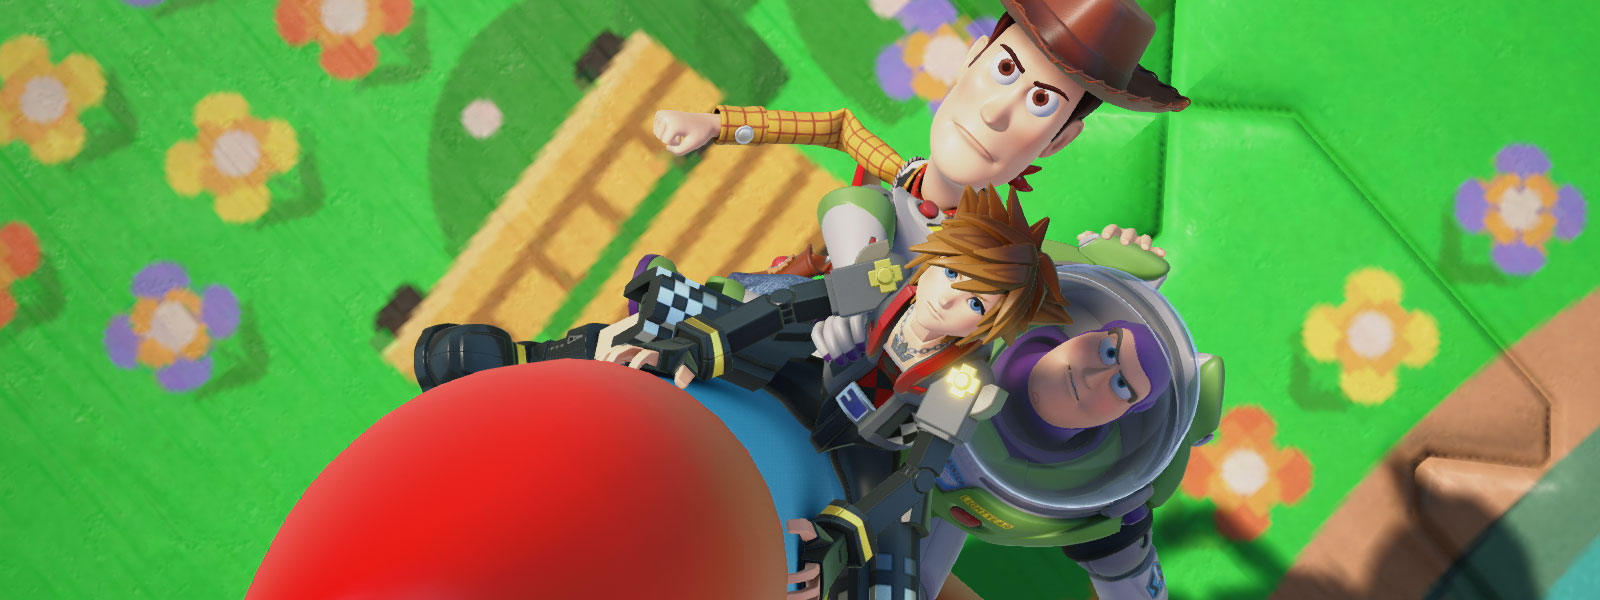 Sora, Woody, and Buzz Lightyear ride on a rocket in Toy Story World